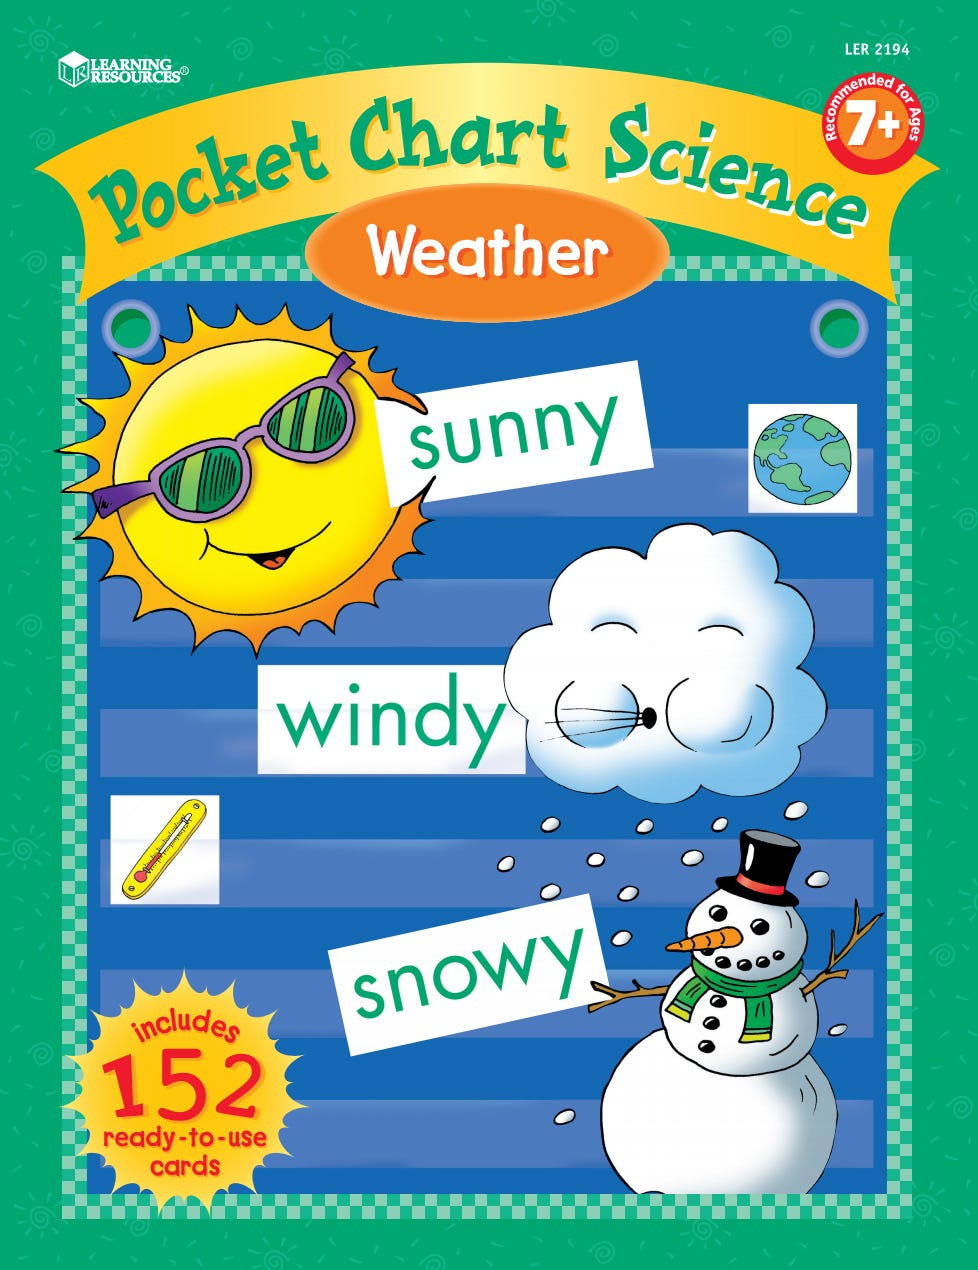 Pocket Chart Science: Weather